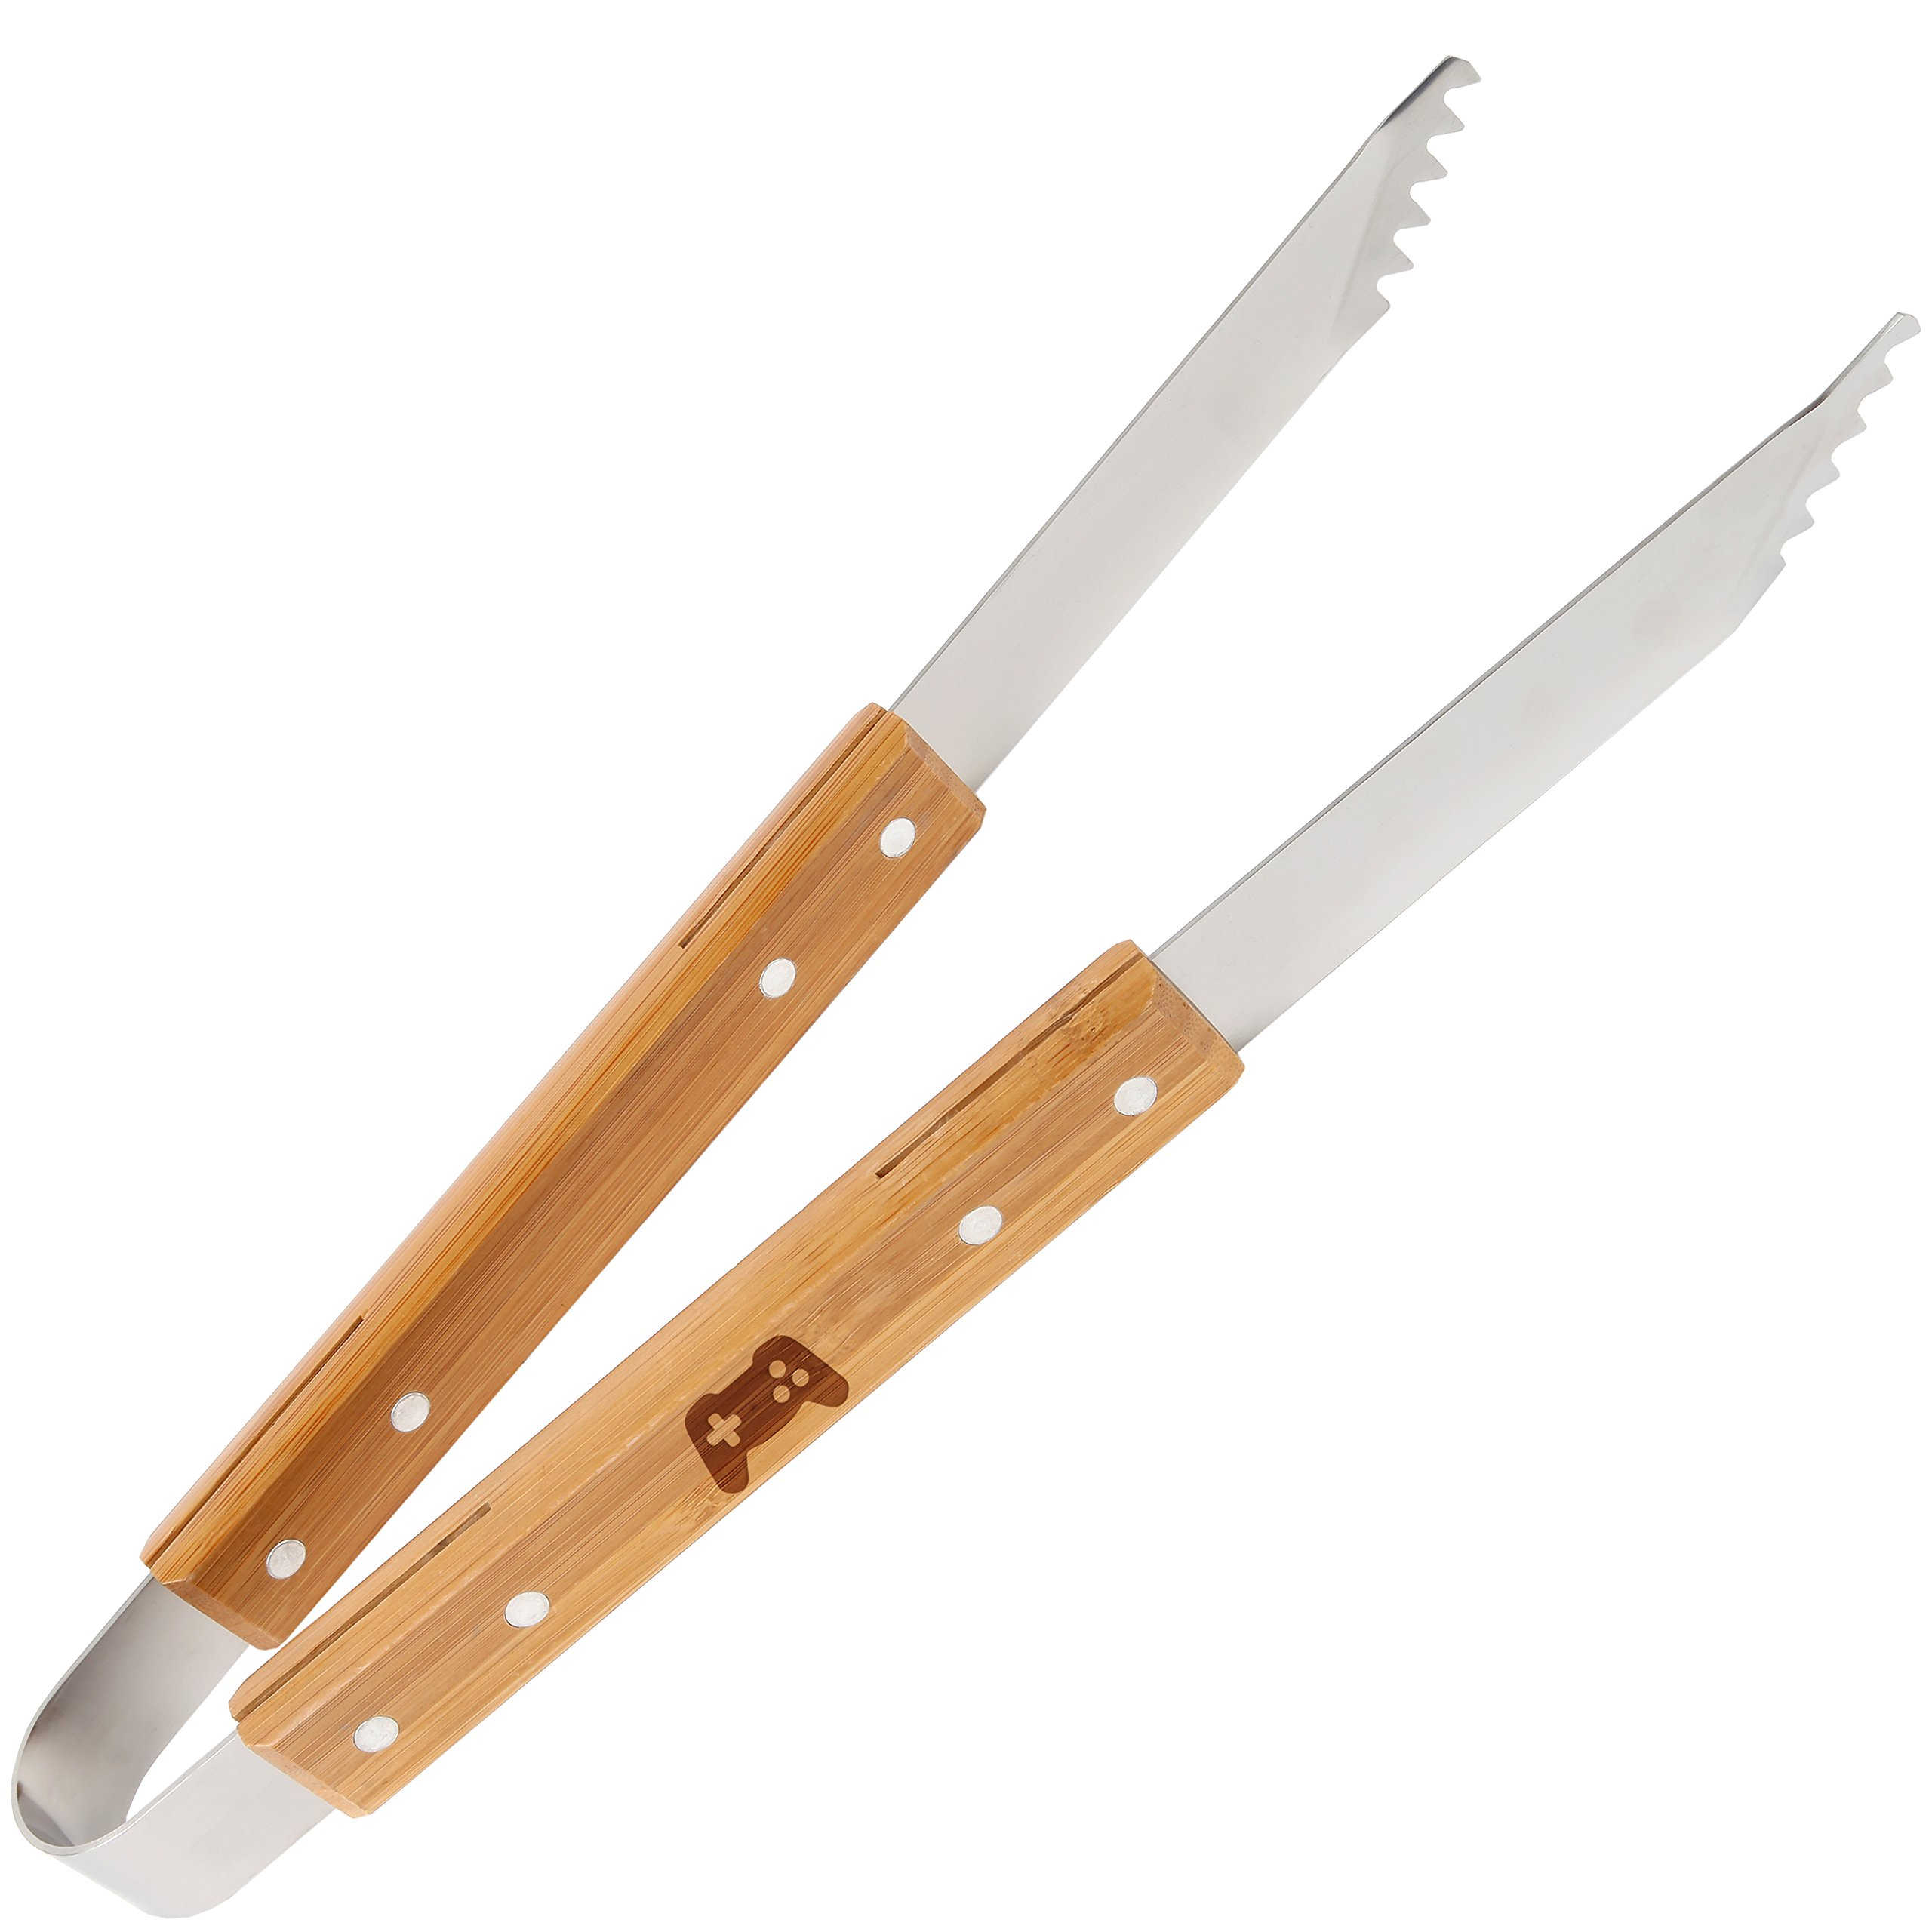 Video Game Controller Wooden Accessories Company Stainless Steel Grill Tongs With Laser Engraved Design - 16 Inch Bbq Grill Tongs With Wooden Handle - Grilling Gifts For Women And Men